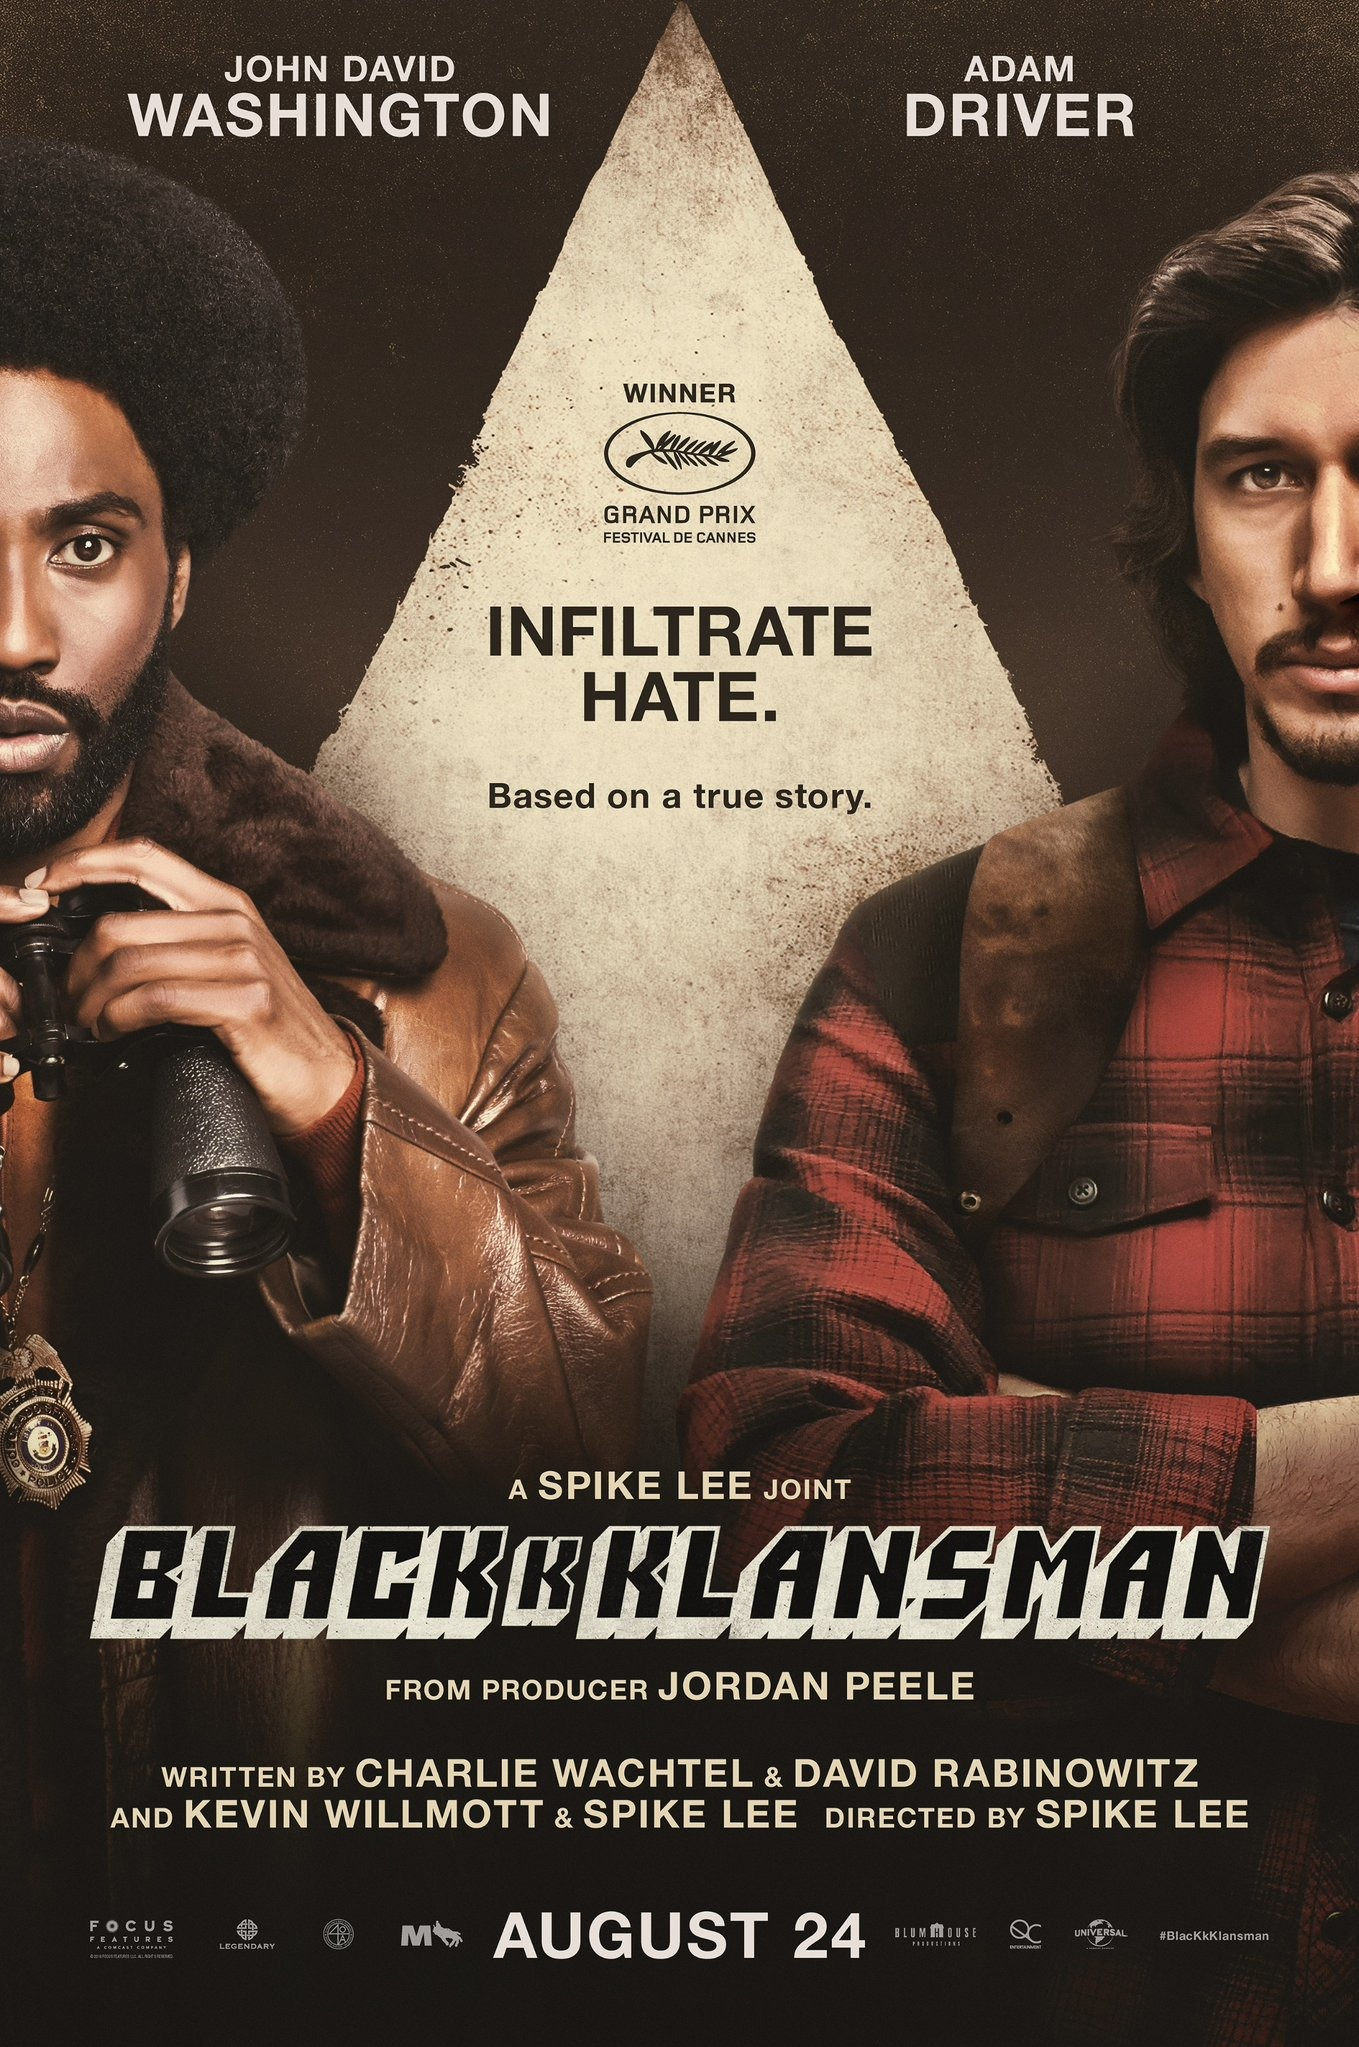 https://img5.downloadha.com/hosein/files/2018/11/BlacKkKlansman-2018-poster-large.jpg